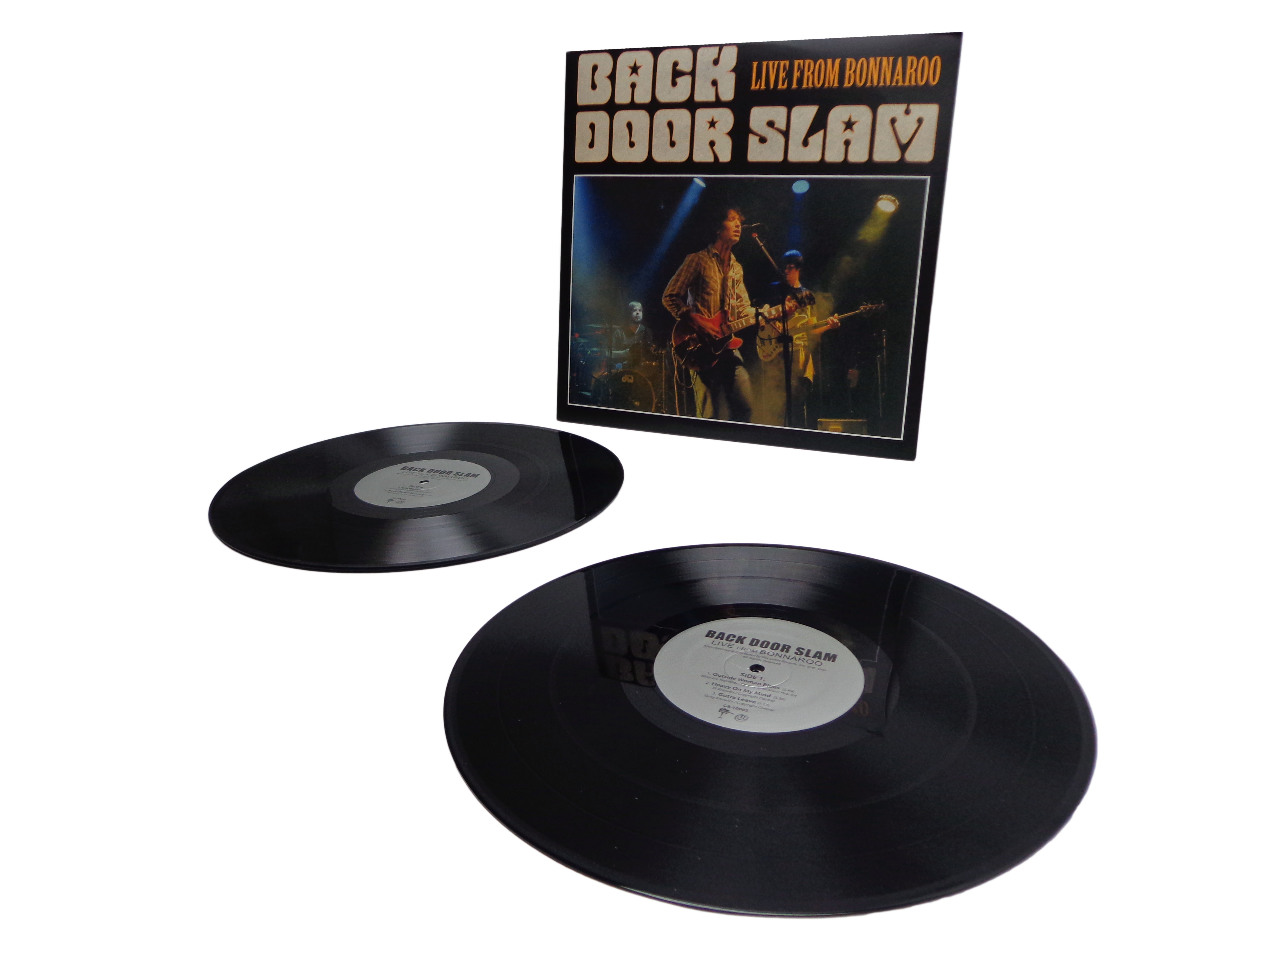 NEW Live from Bonnaroo by Back Door Slam RARE Vinyl Davy Knowles LP RECORD